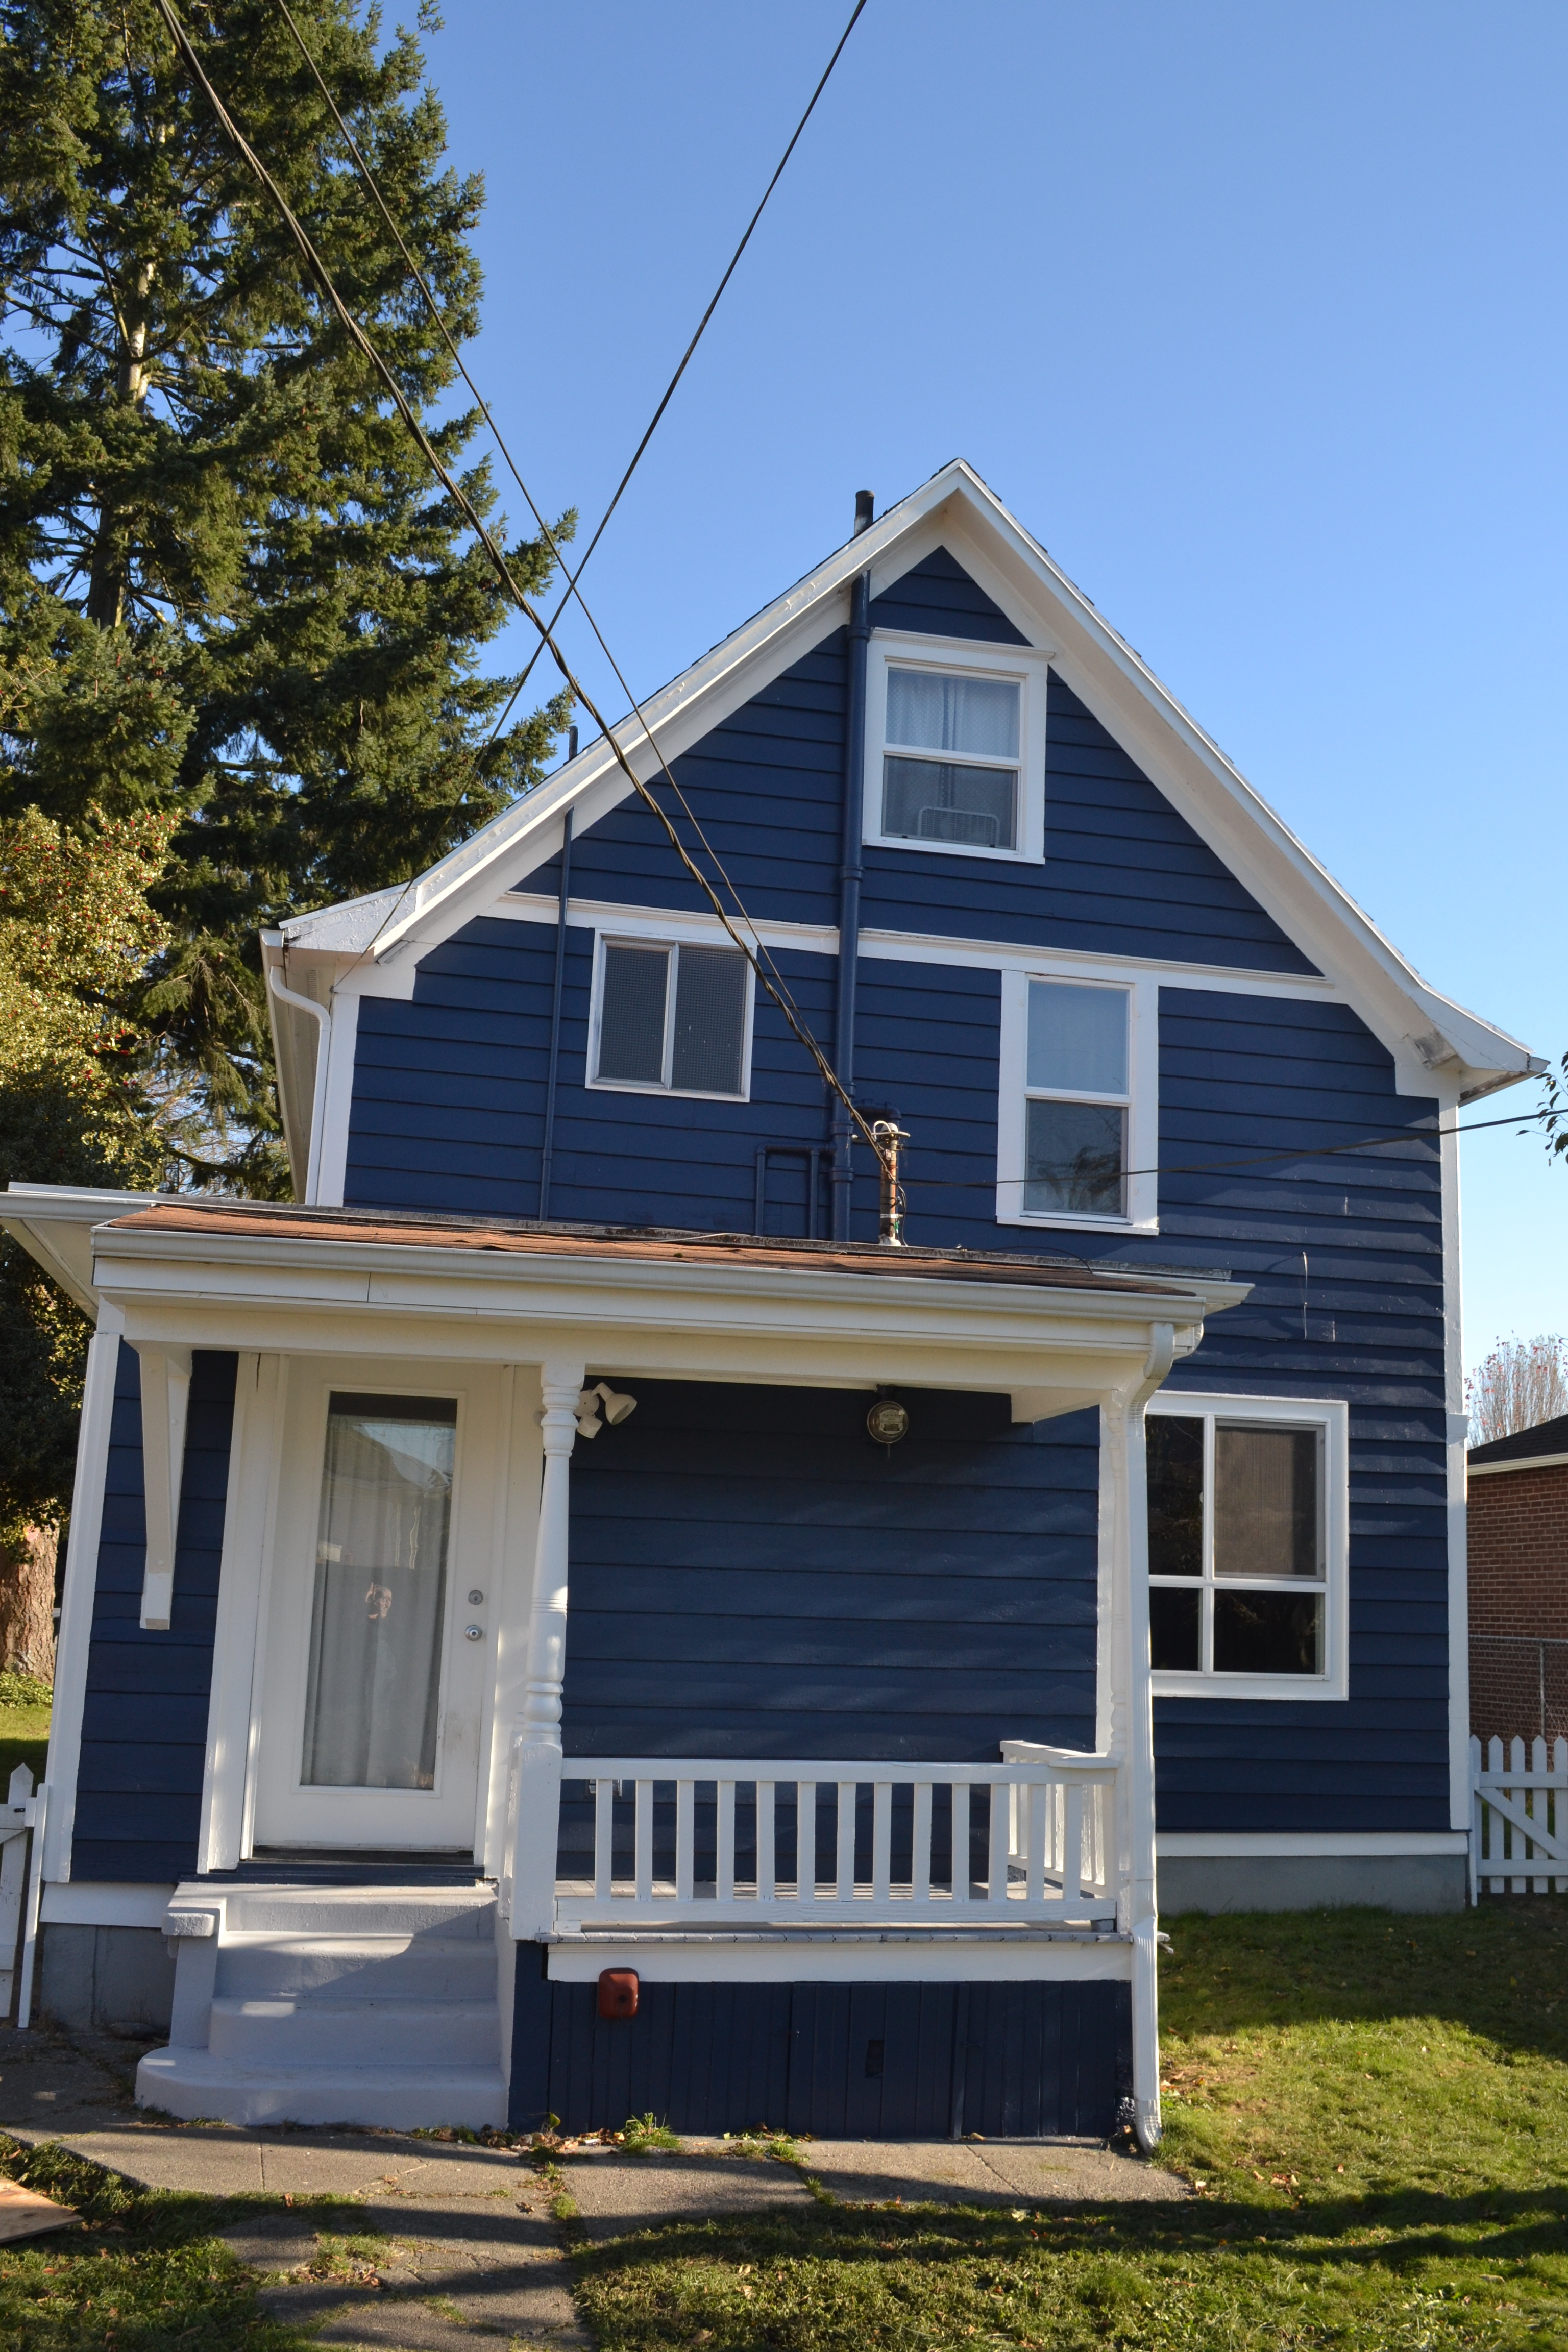 Blue House With White Trim Awesome And A Pretty Home Painted Blue